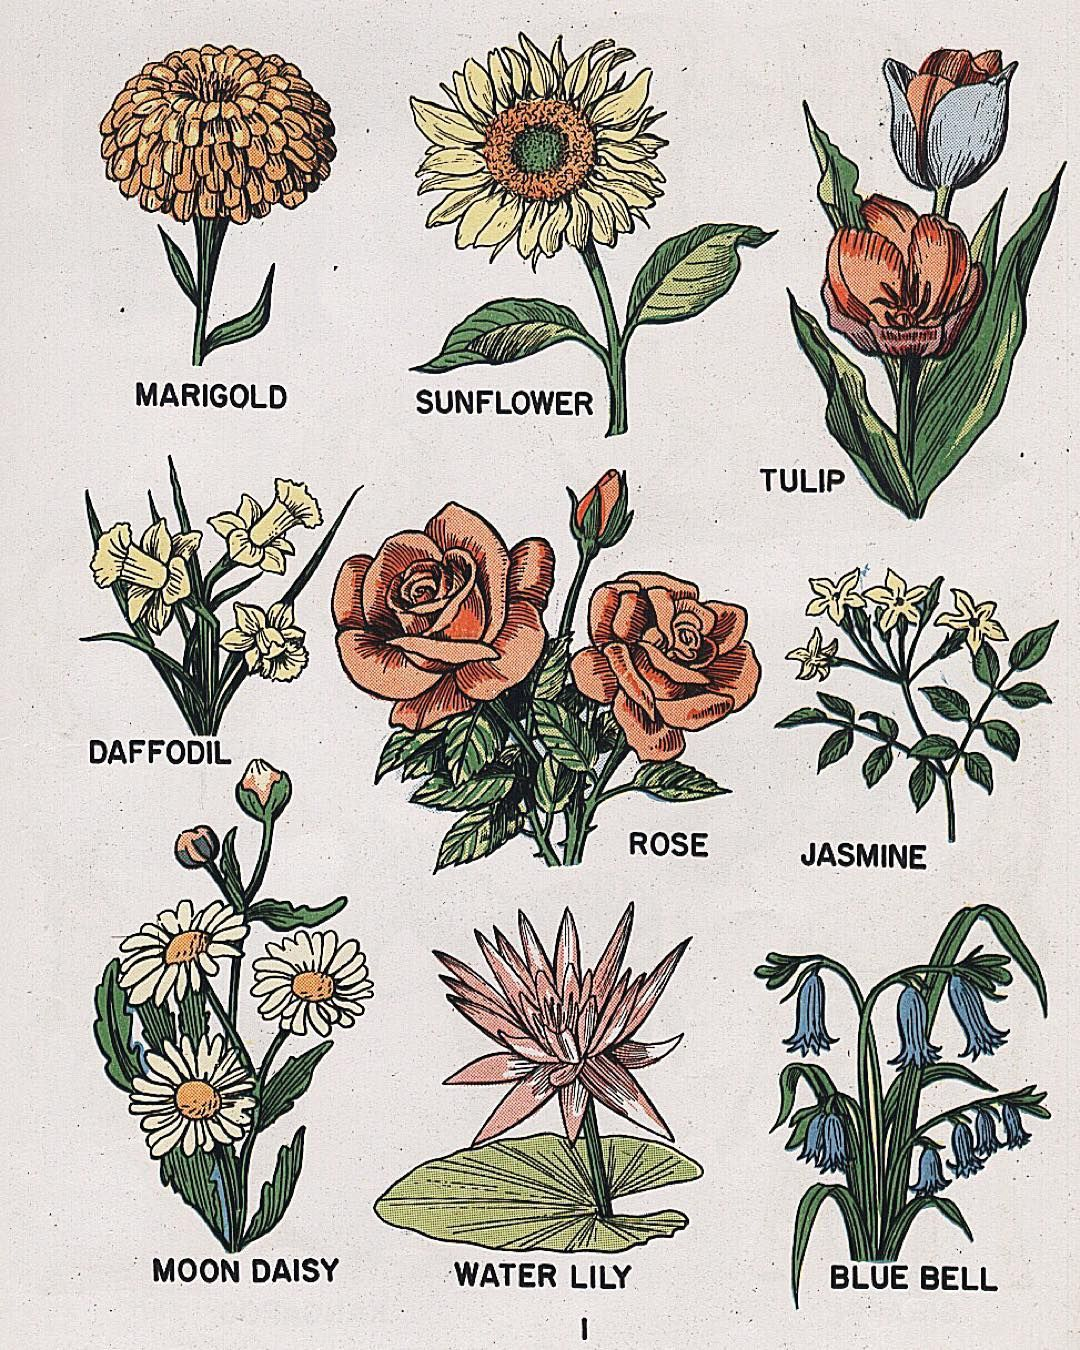 Pin by jasmine york on art pinterest tattoo drawings and artsy inspiration for my floral golden afternoon tattoo izmirmasajfo Images